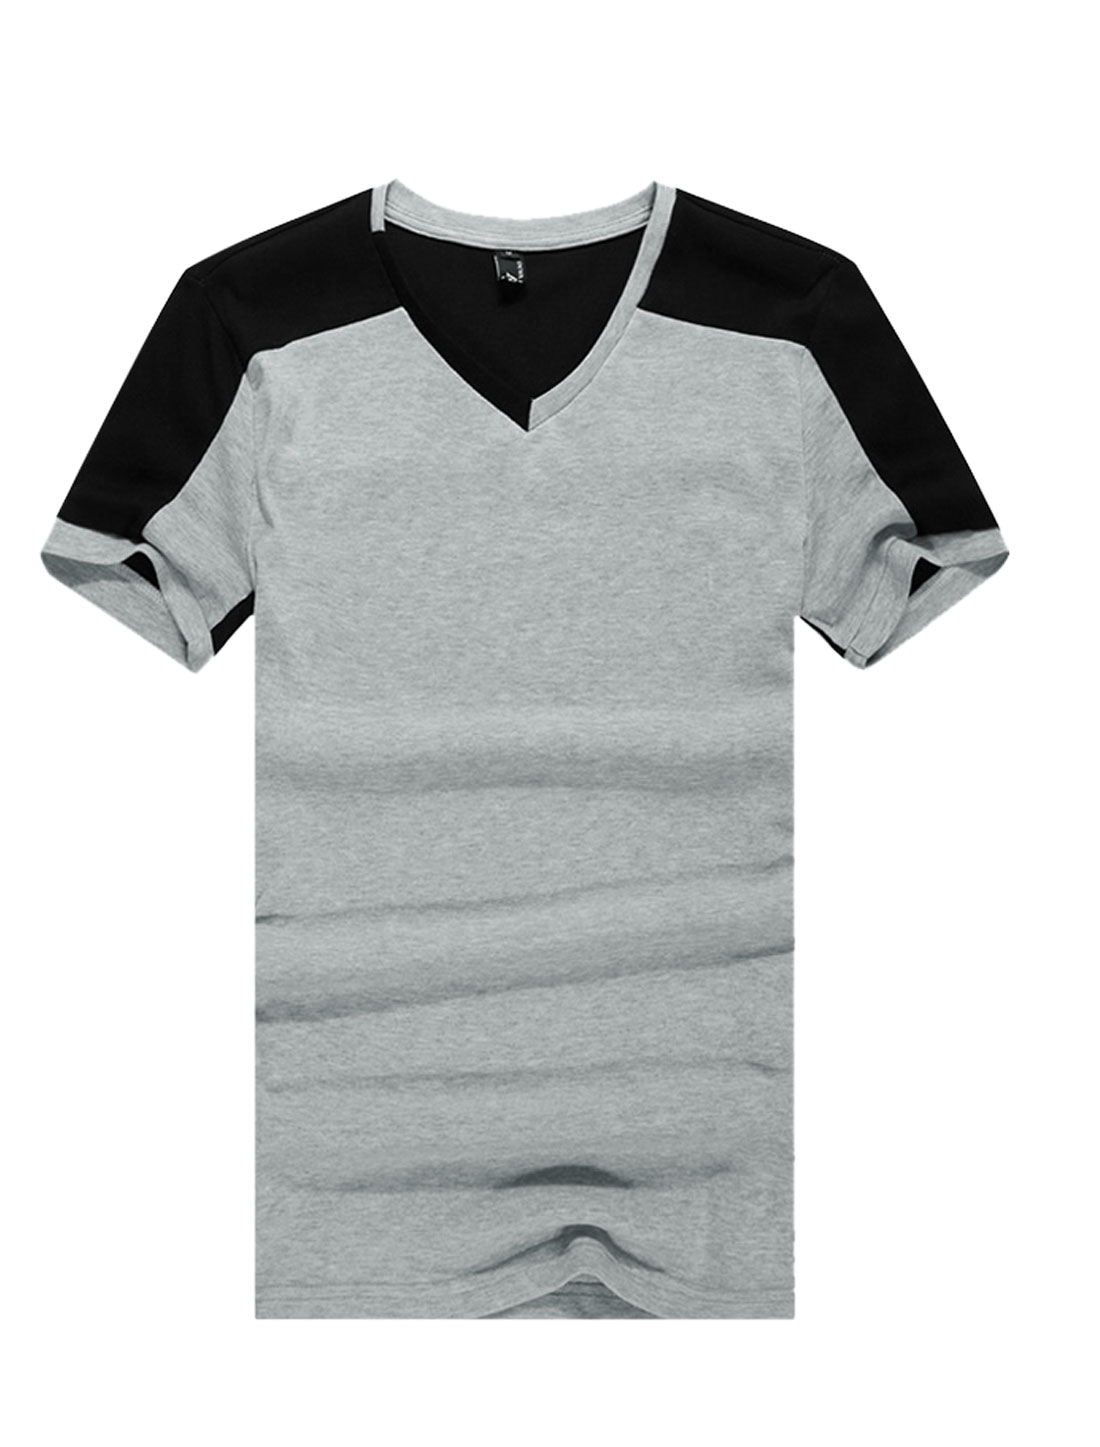 Men V Neck Panel Design Ribbed Design Summer T-Shirt Light Gray M